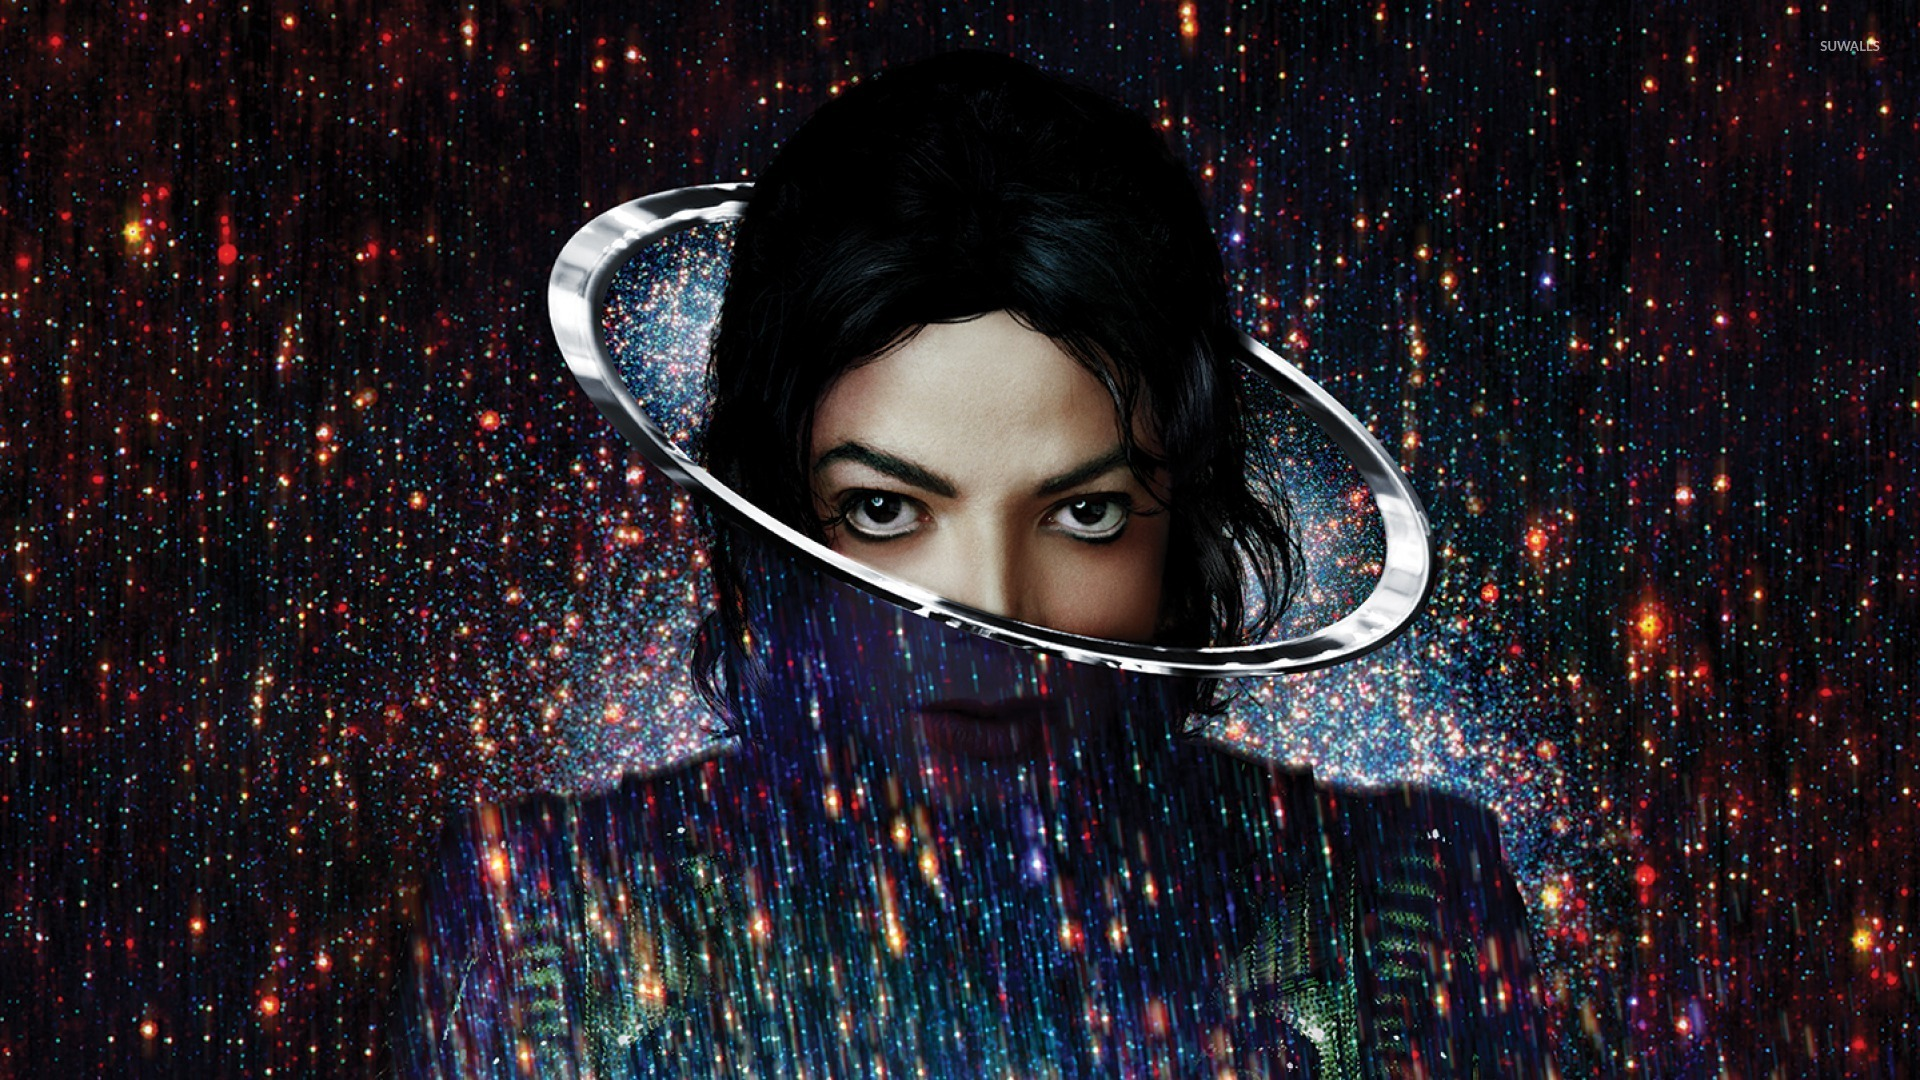 Rip michael jackson wallpaper